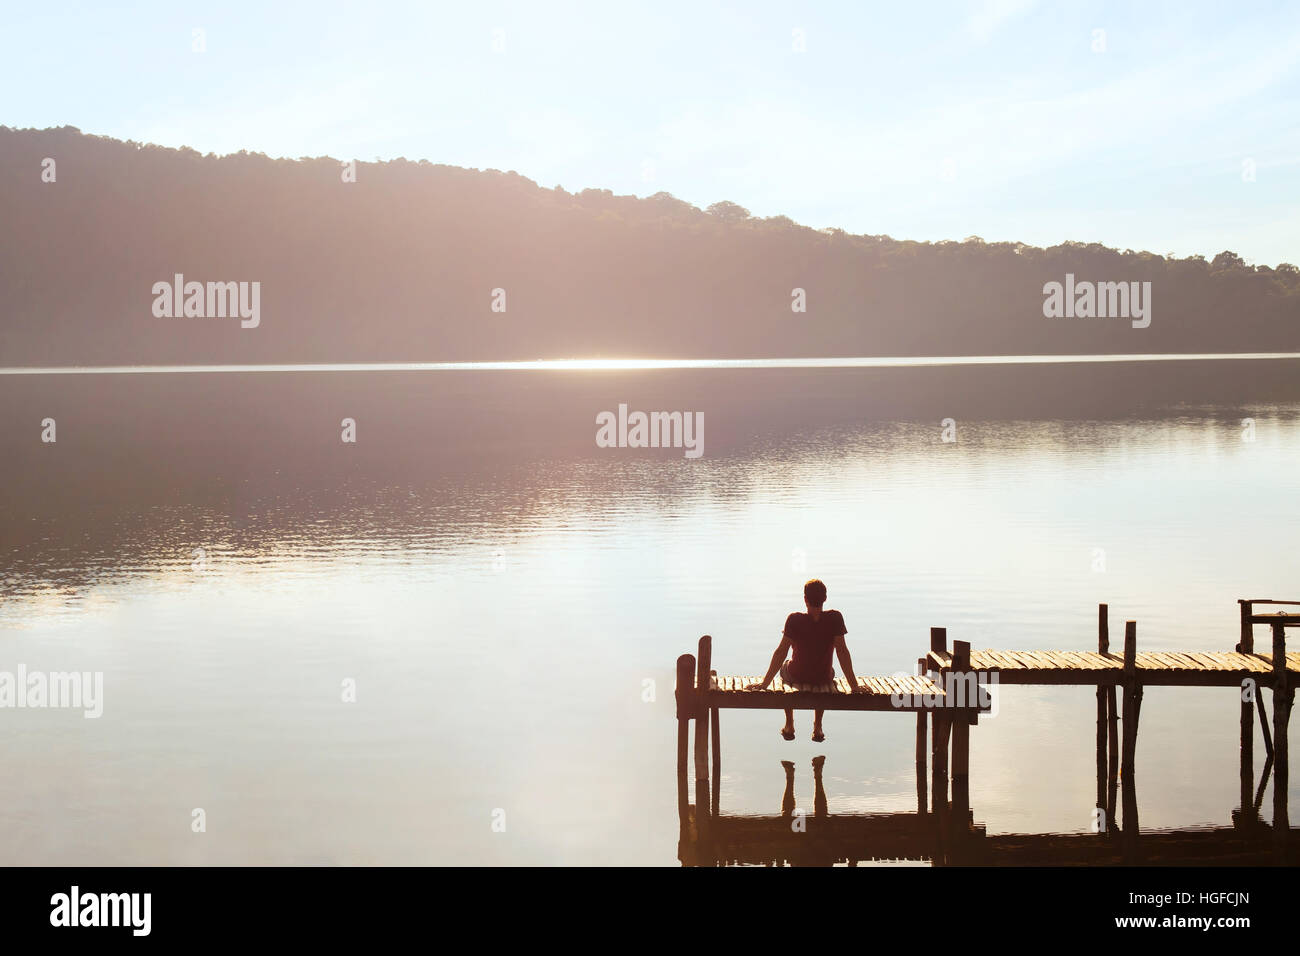 happy people, daydreamer, man enjoying beautiful view of the lake, inspiration in nature - Stock Image